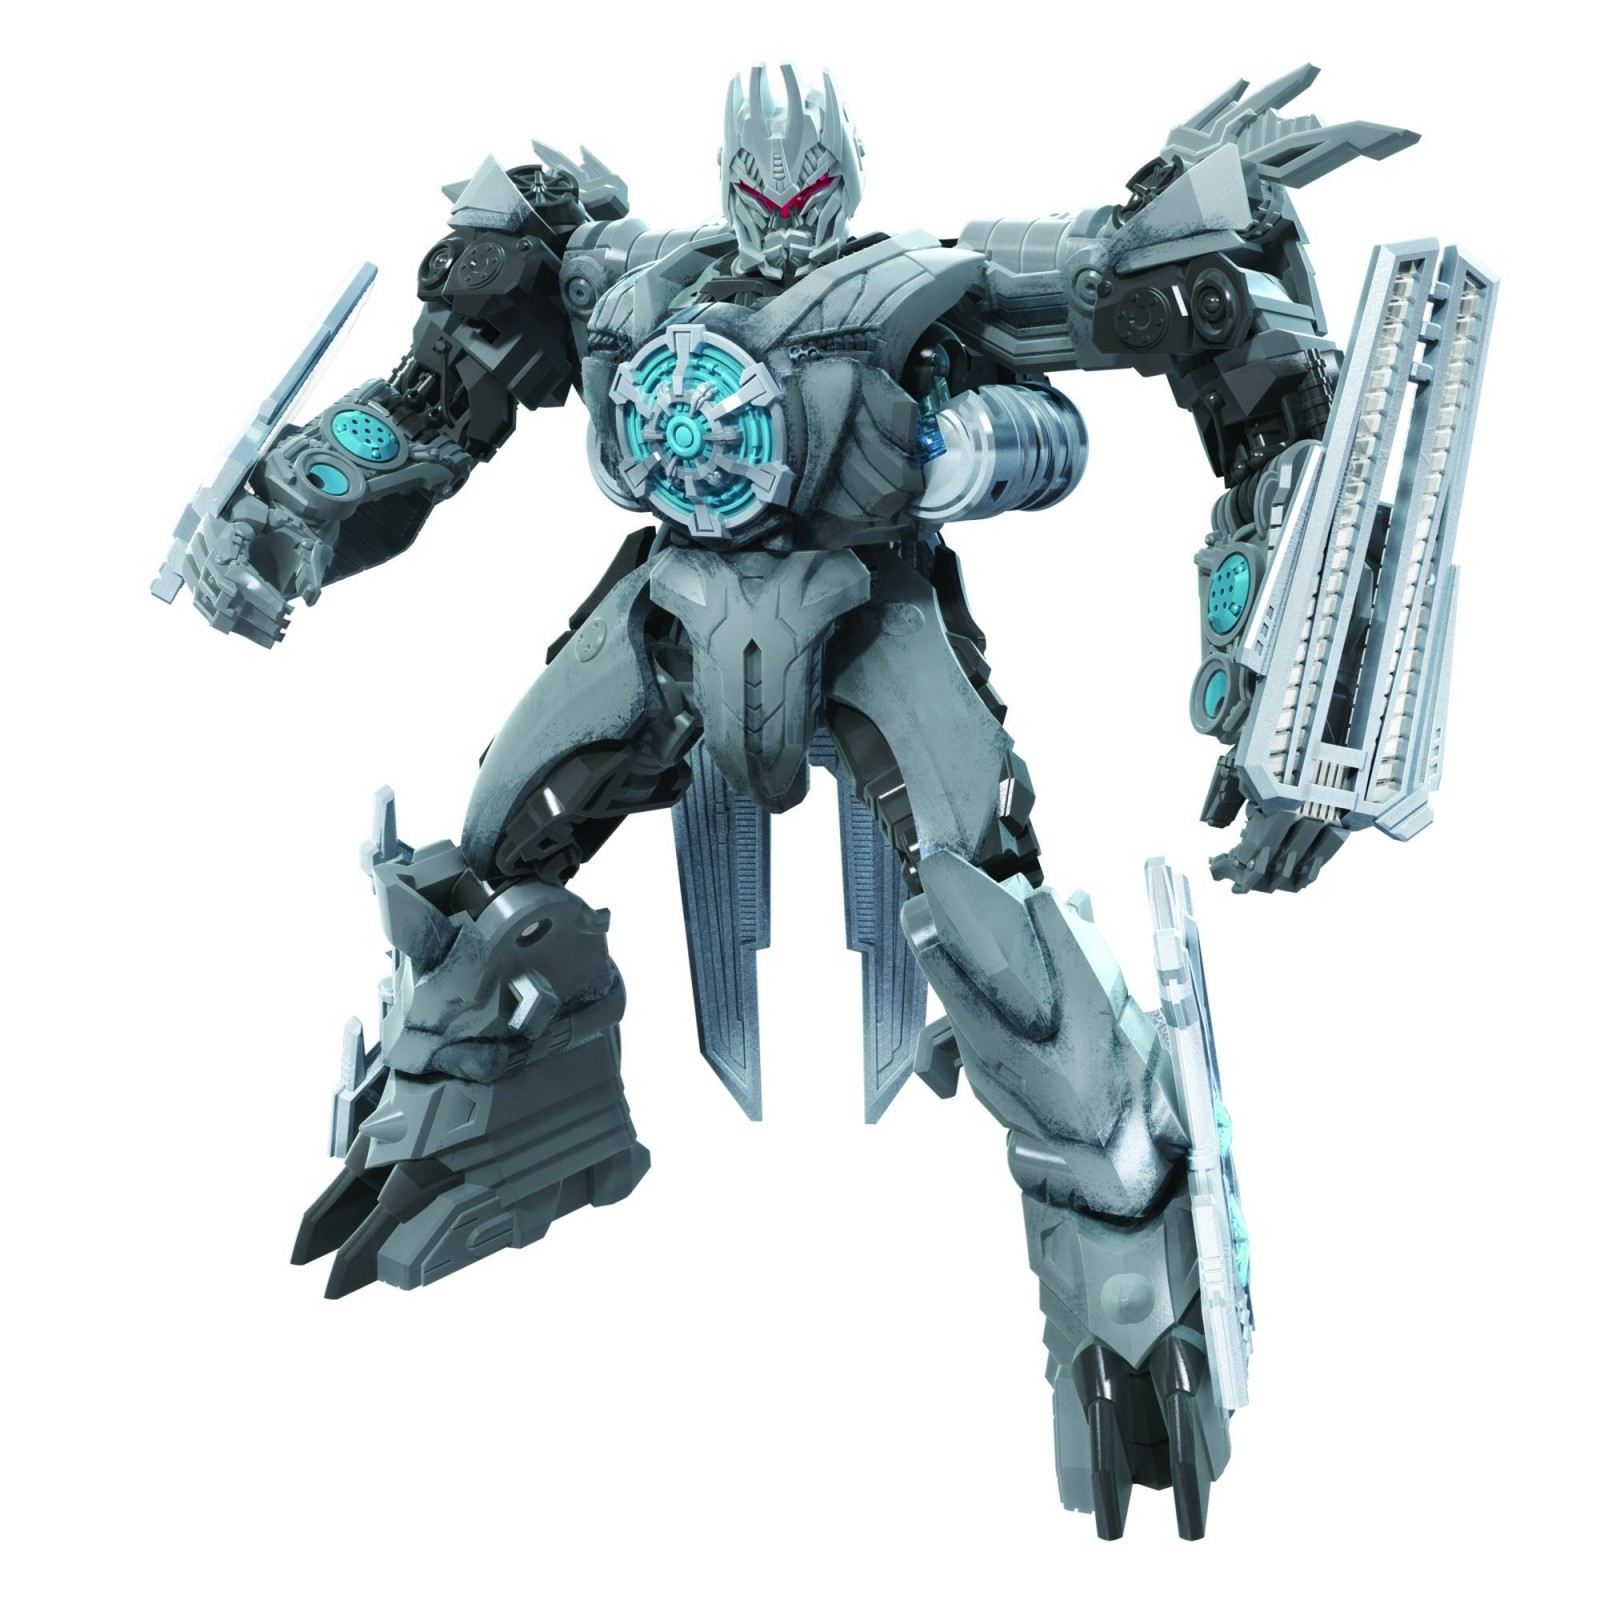 Transformers News: Transformers Studio Series Official Images - Sentinel Prime, Topspin, Skipjack, Blitzwing, and More